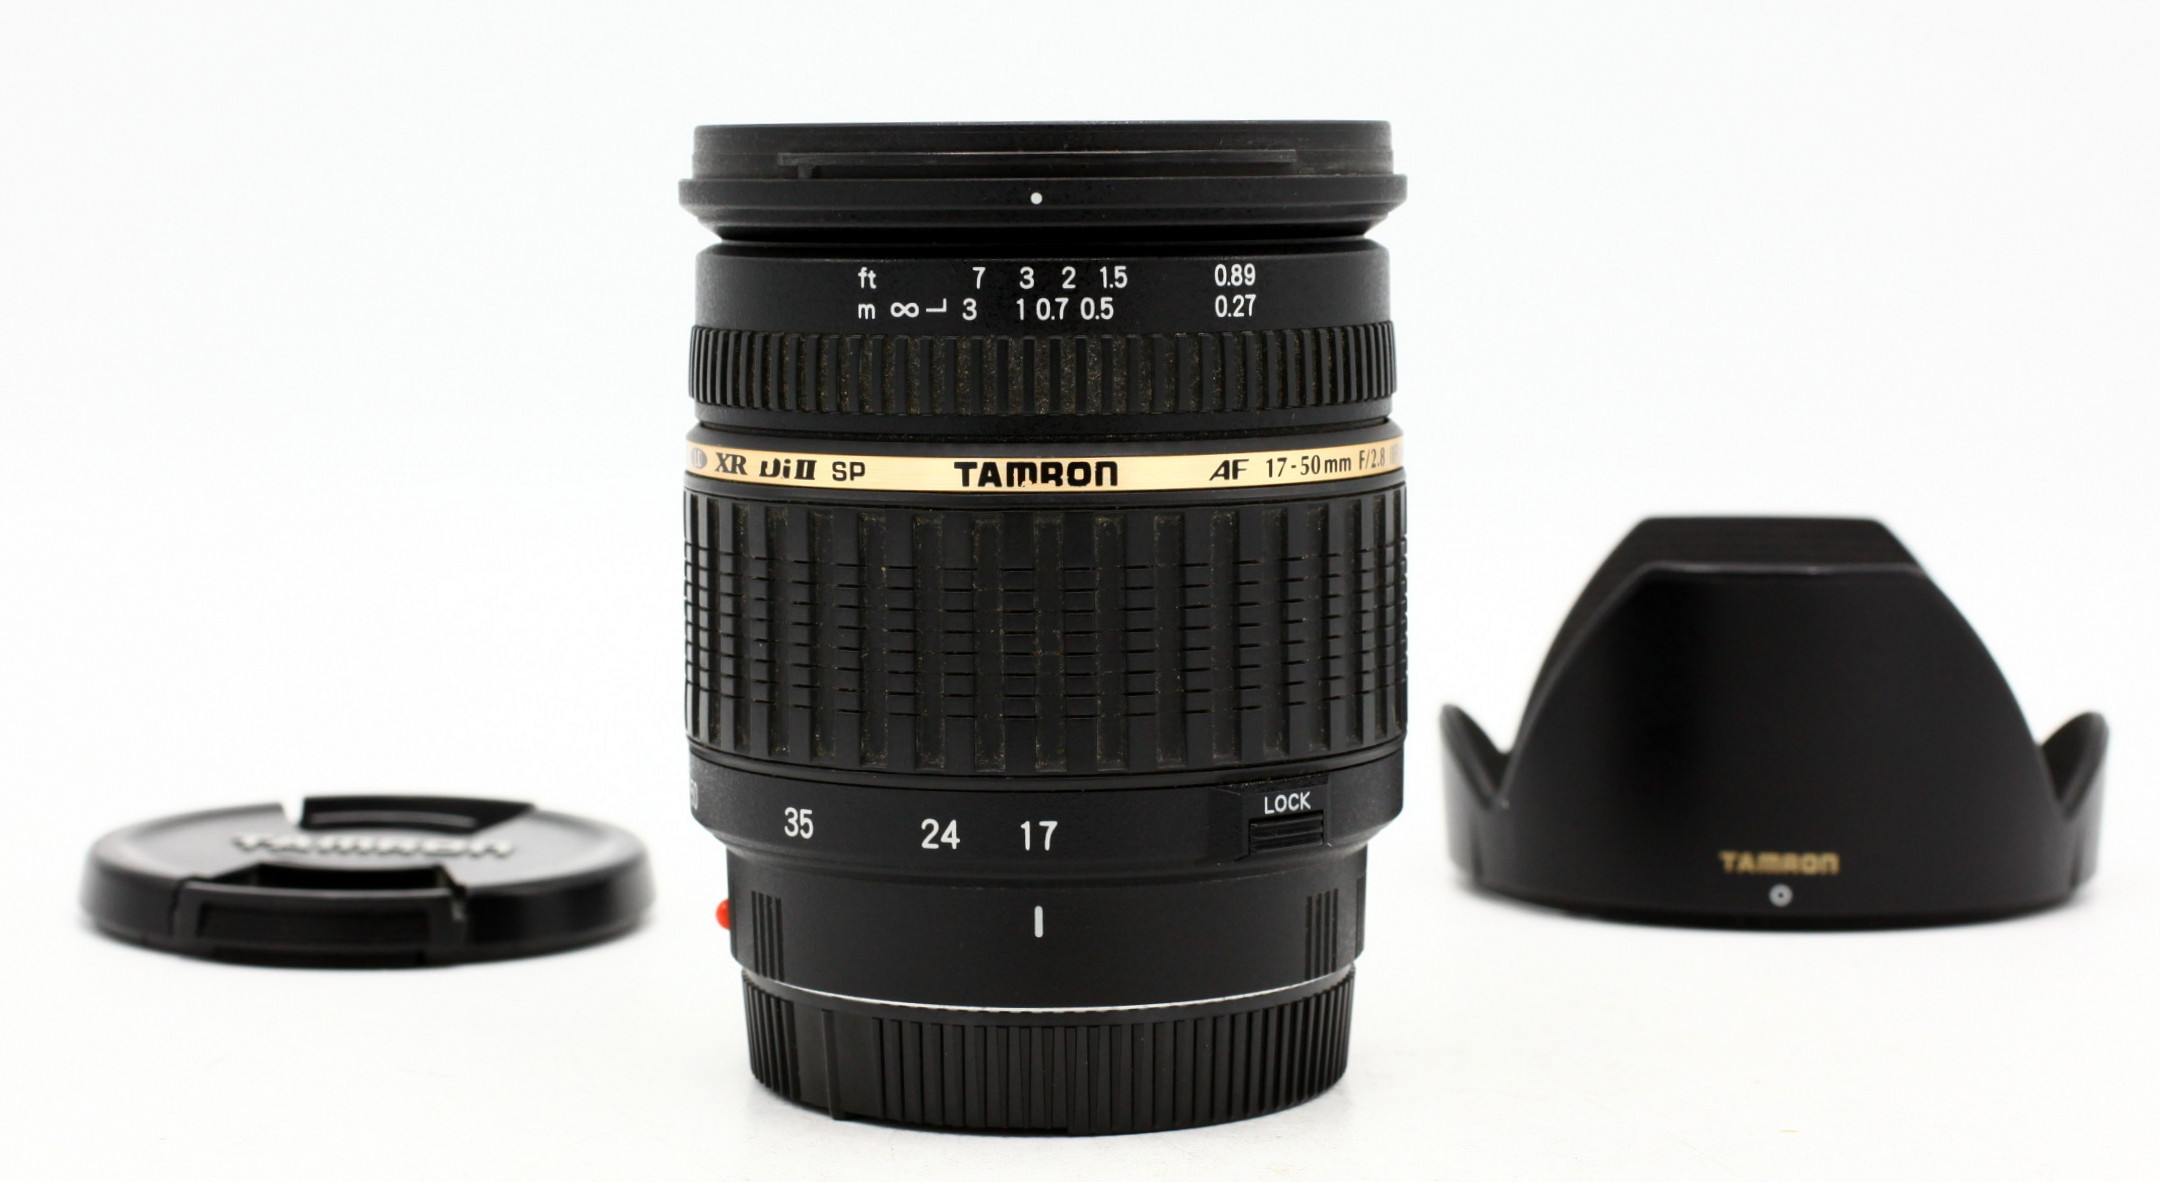 Tamron 17-50mm f/2.8 XR Di II Sony A occasion